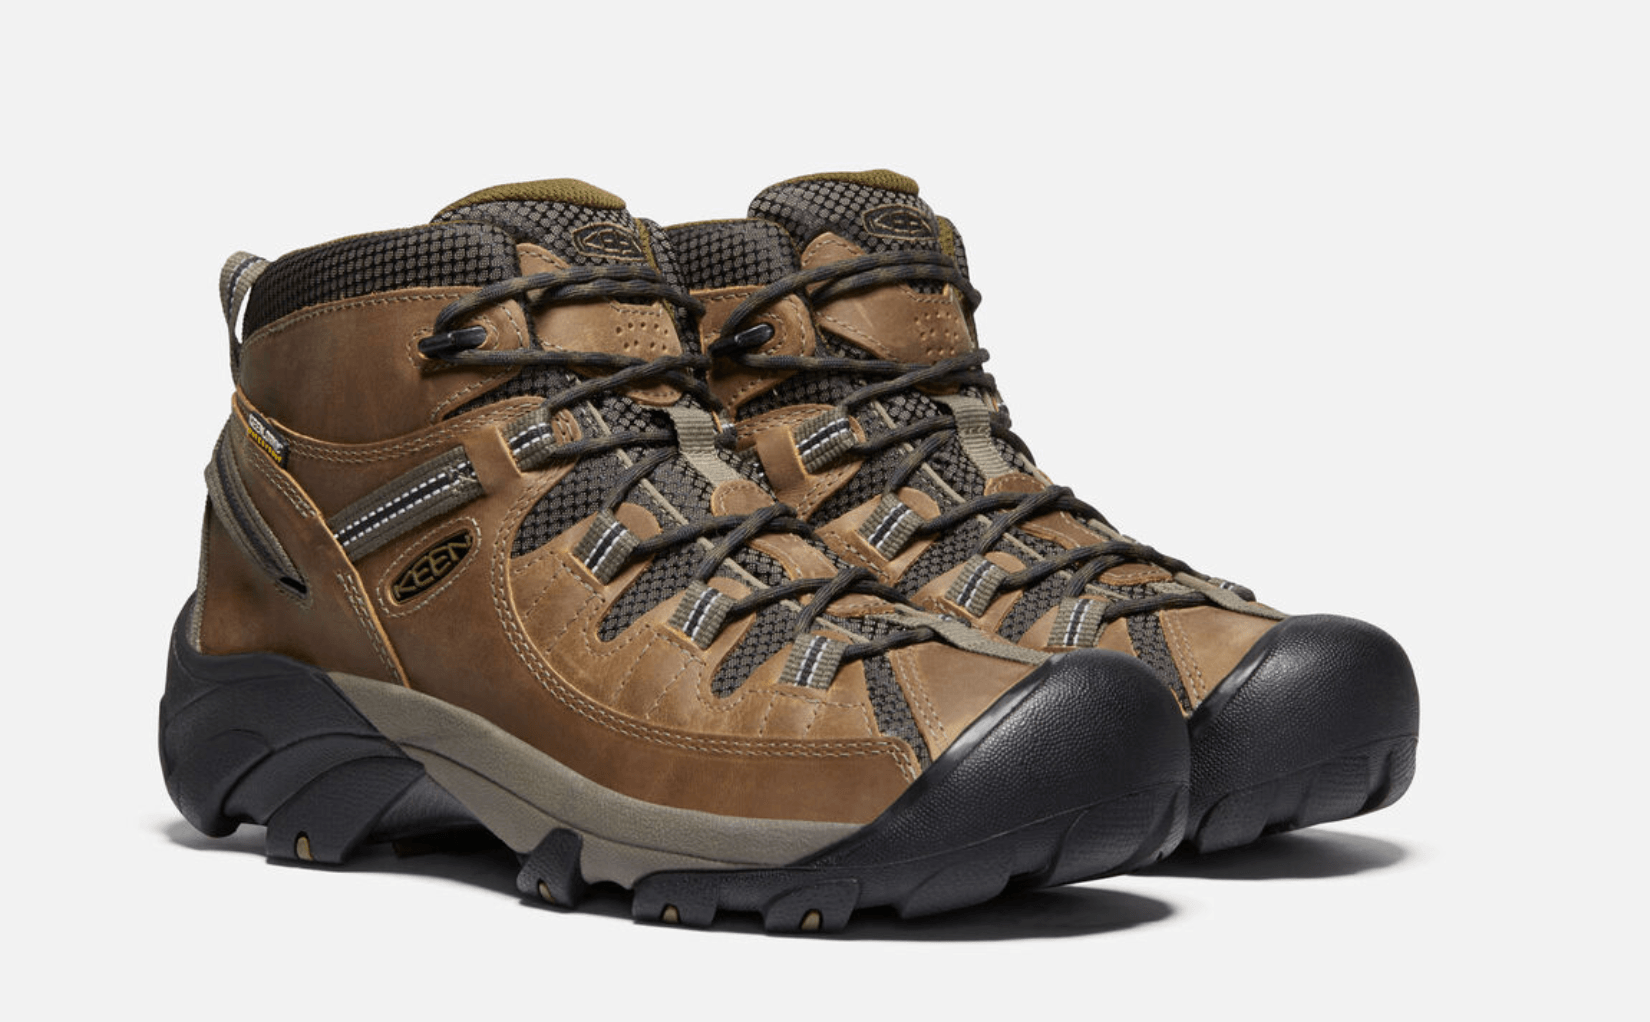 Keen Targhee ii review